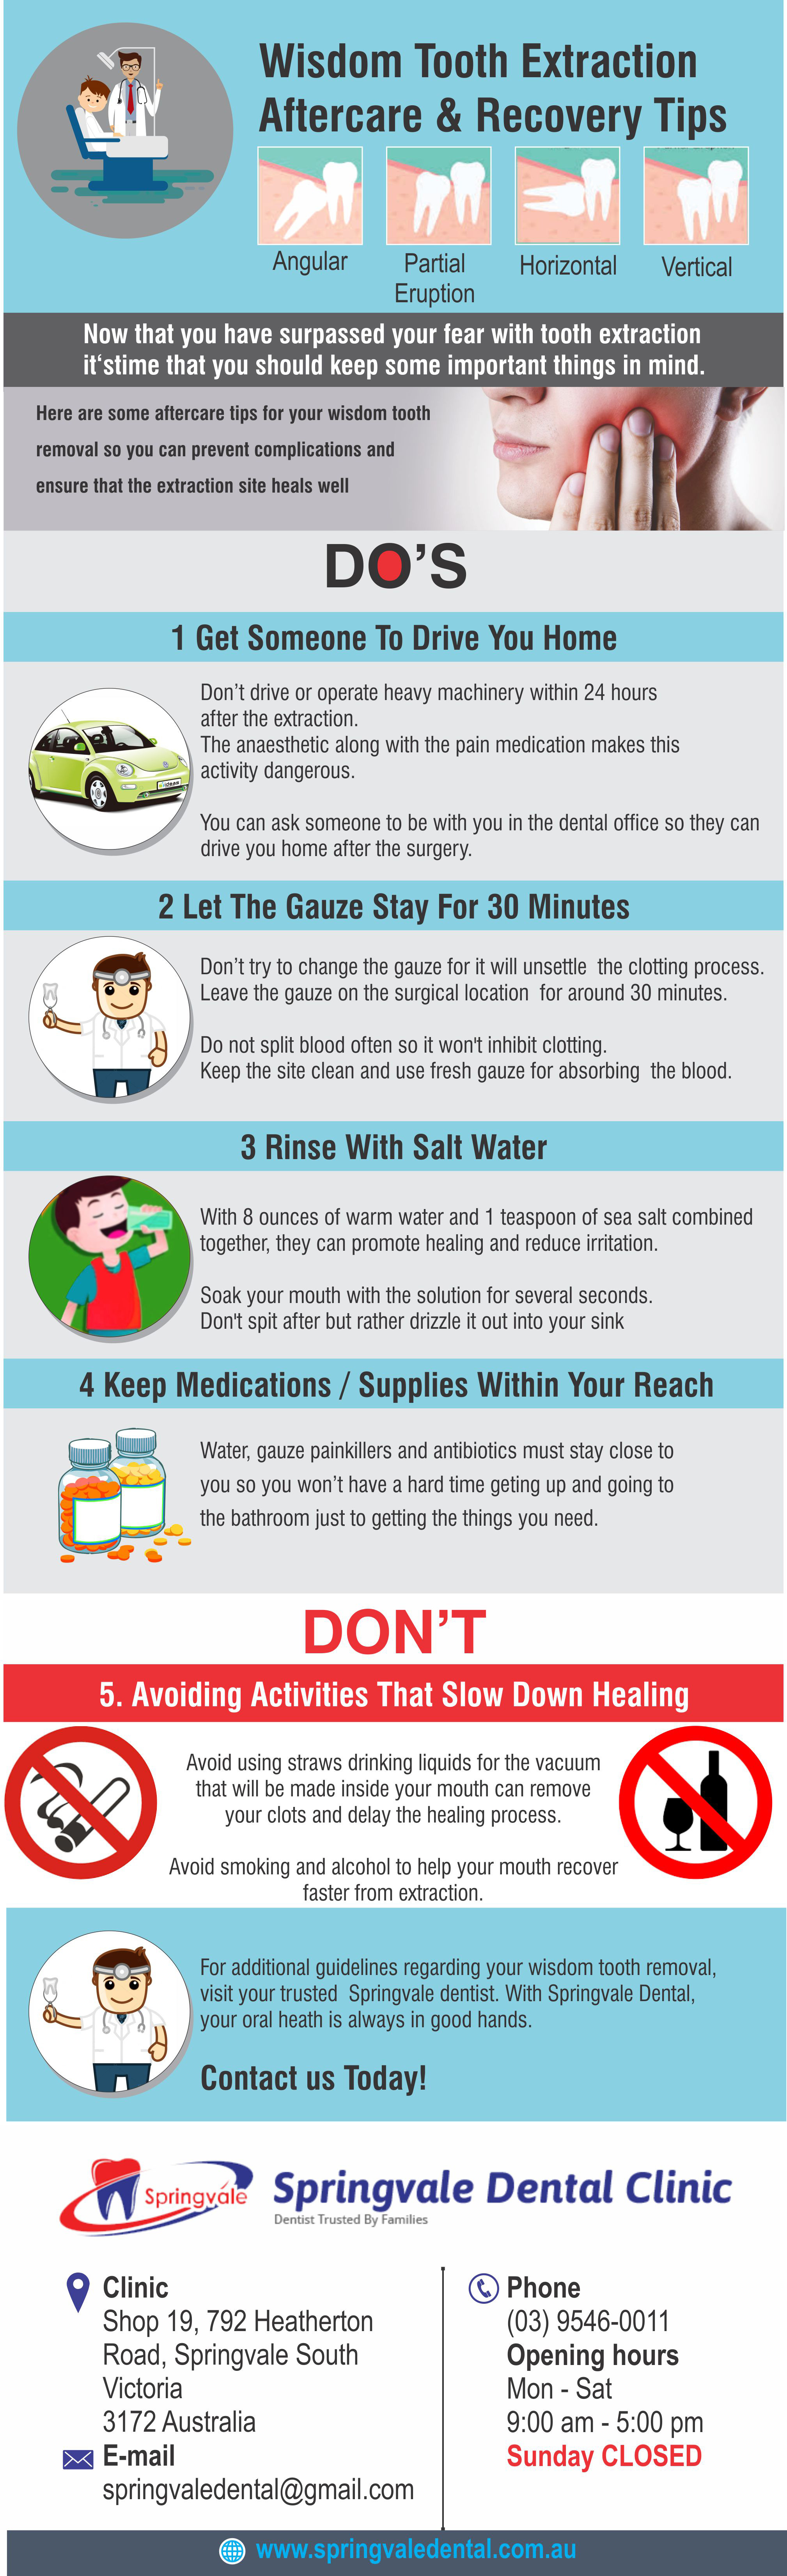 Check Out These Infographic Aftercare Recovery Tips For Wisdom Tooth Extrac Wisdom Tooth Extraction Aftercare Wisdom Teeth Recovery Wisdom Tooth Extraction